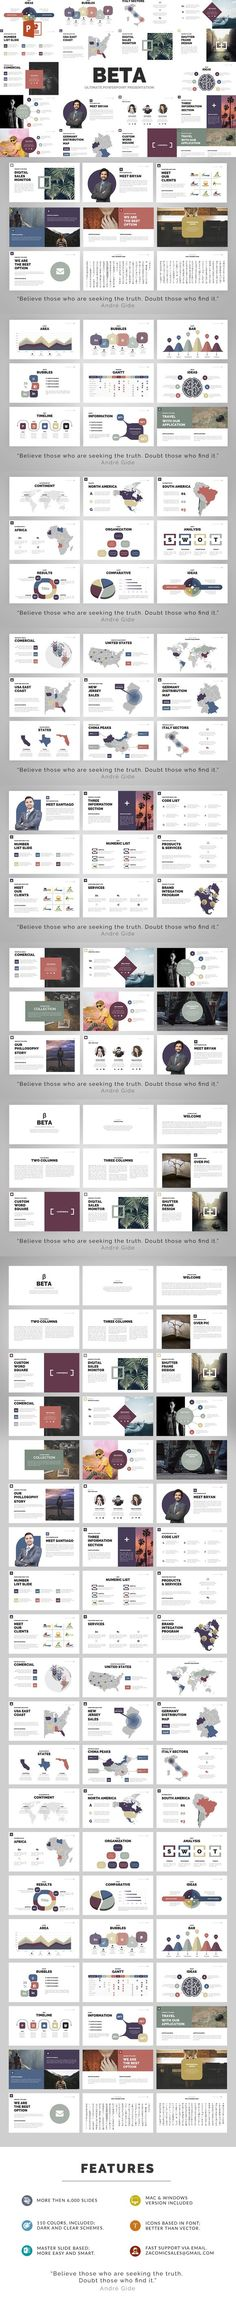 Beta | Powerpoint Template. Business Infographic